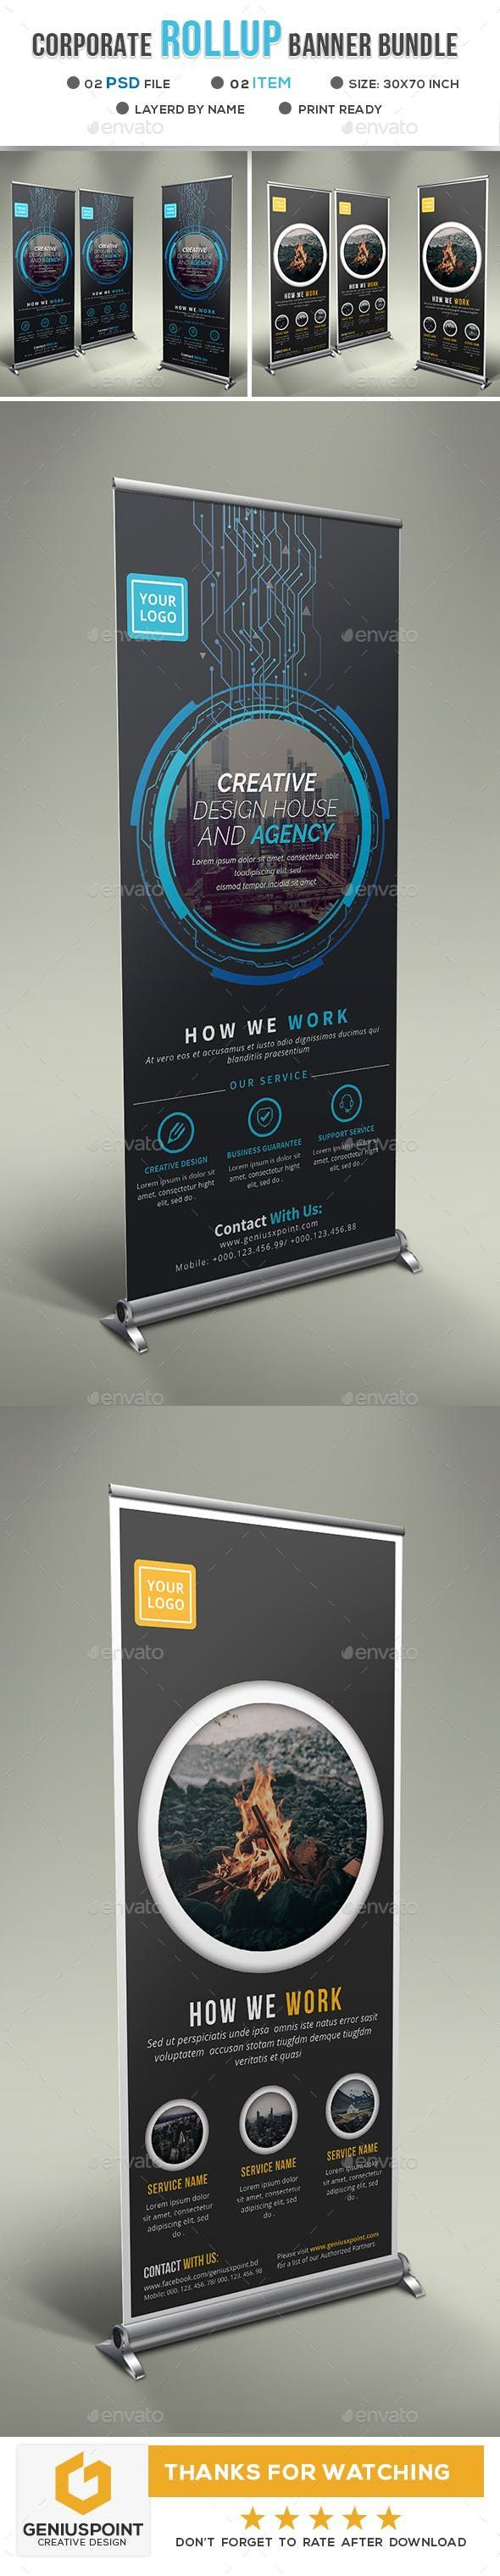 Corporate Roll Up Banner Bundle - Signage Print Templates  #banner #bundle #corp...